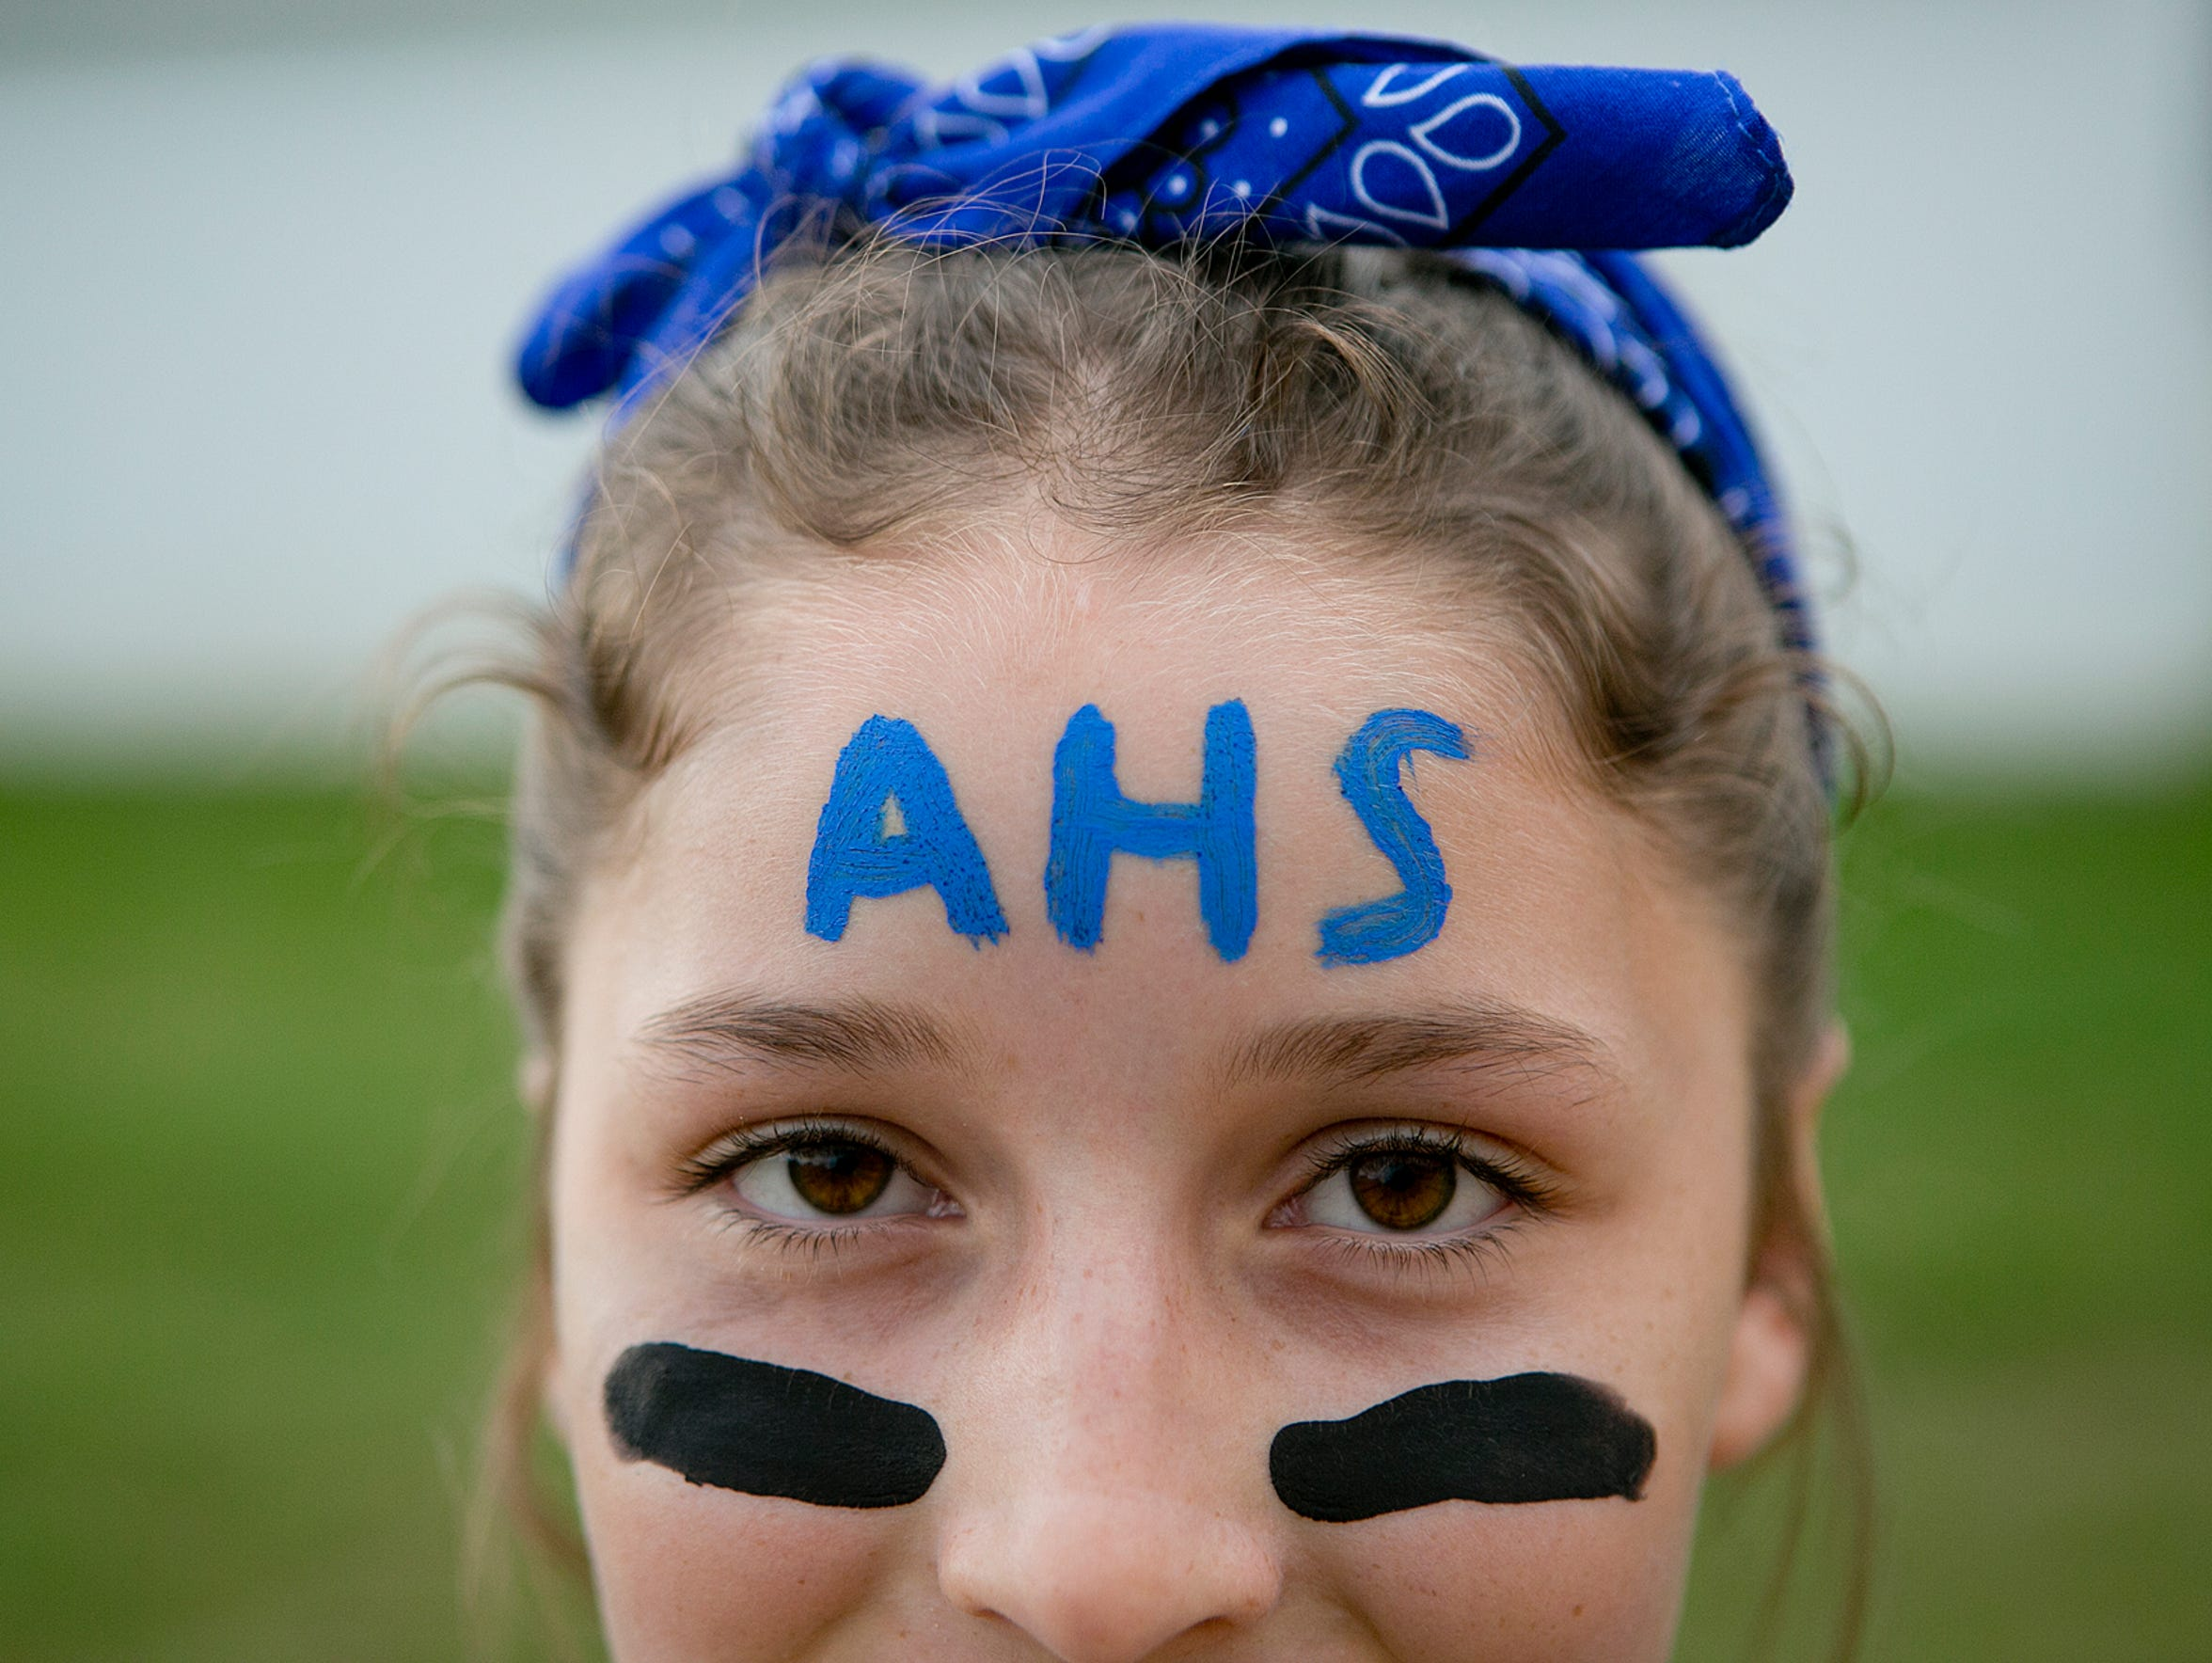 Stephanie Bandy, 11, shows off her Amherst pride with